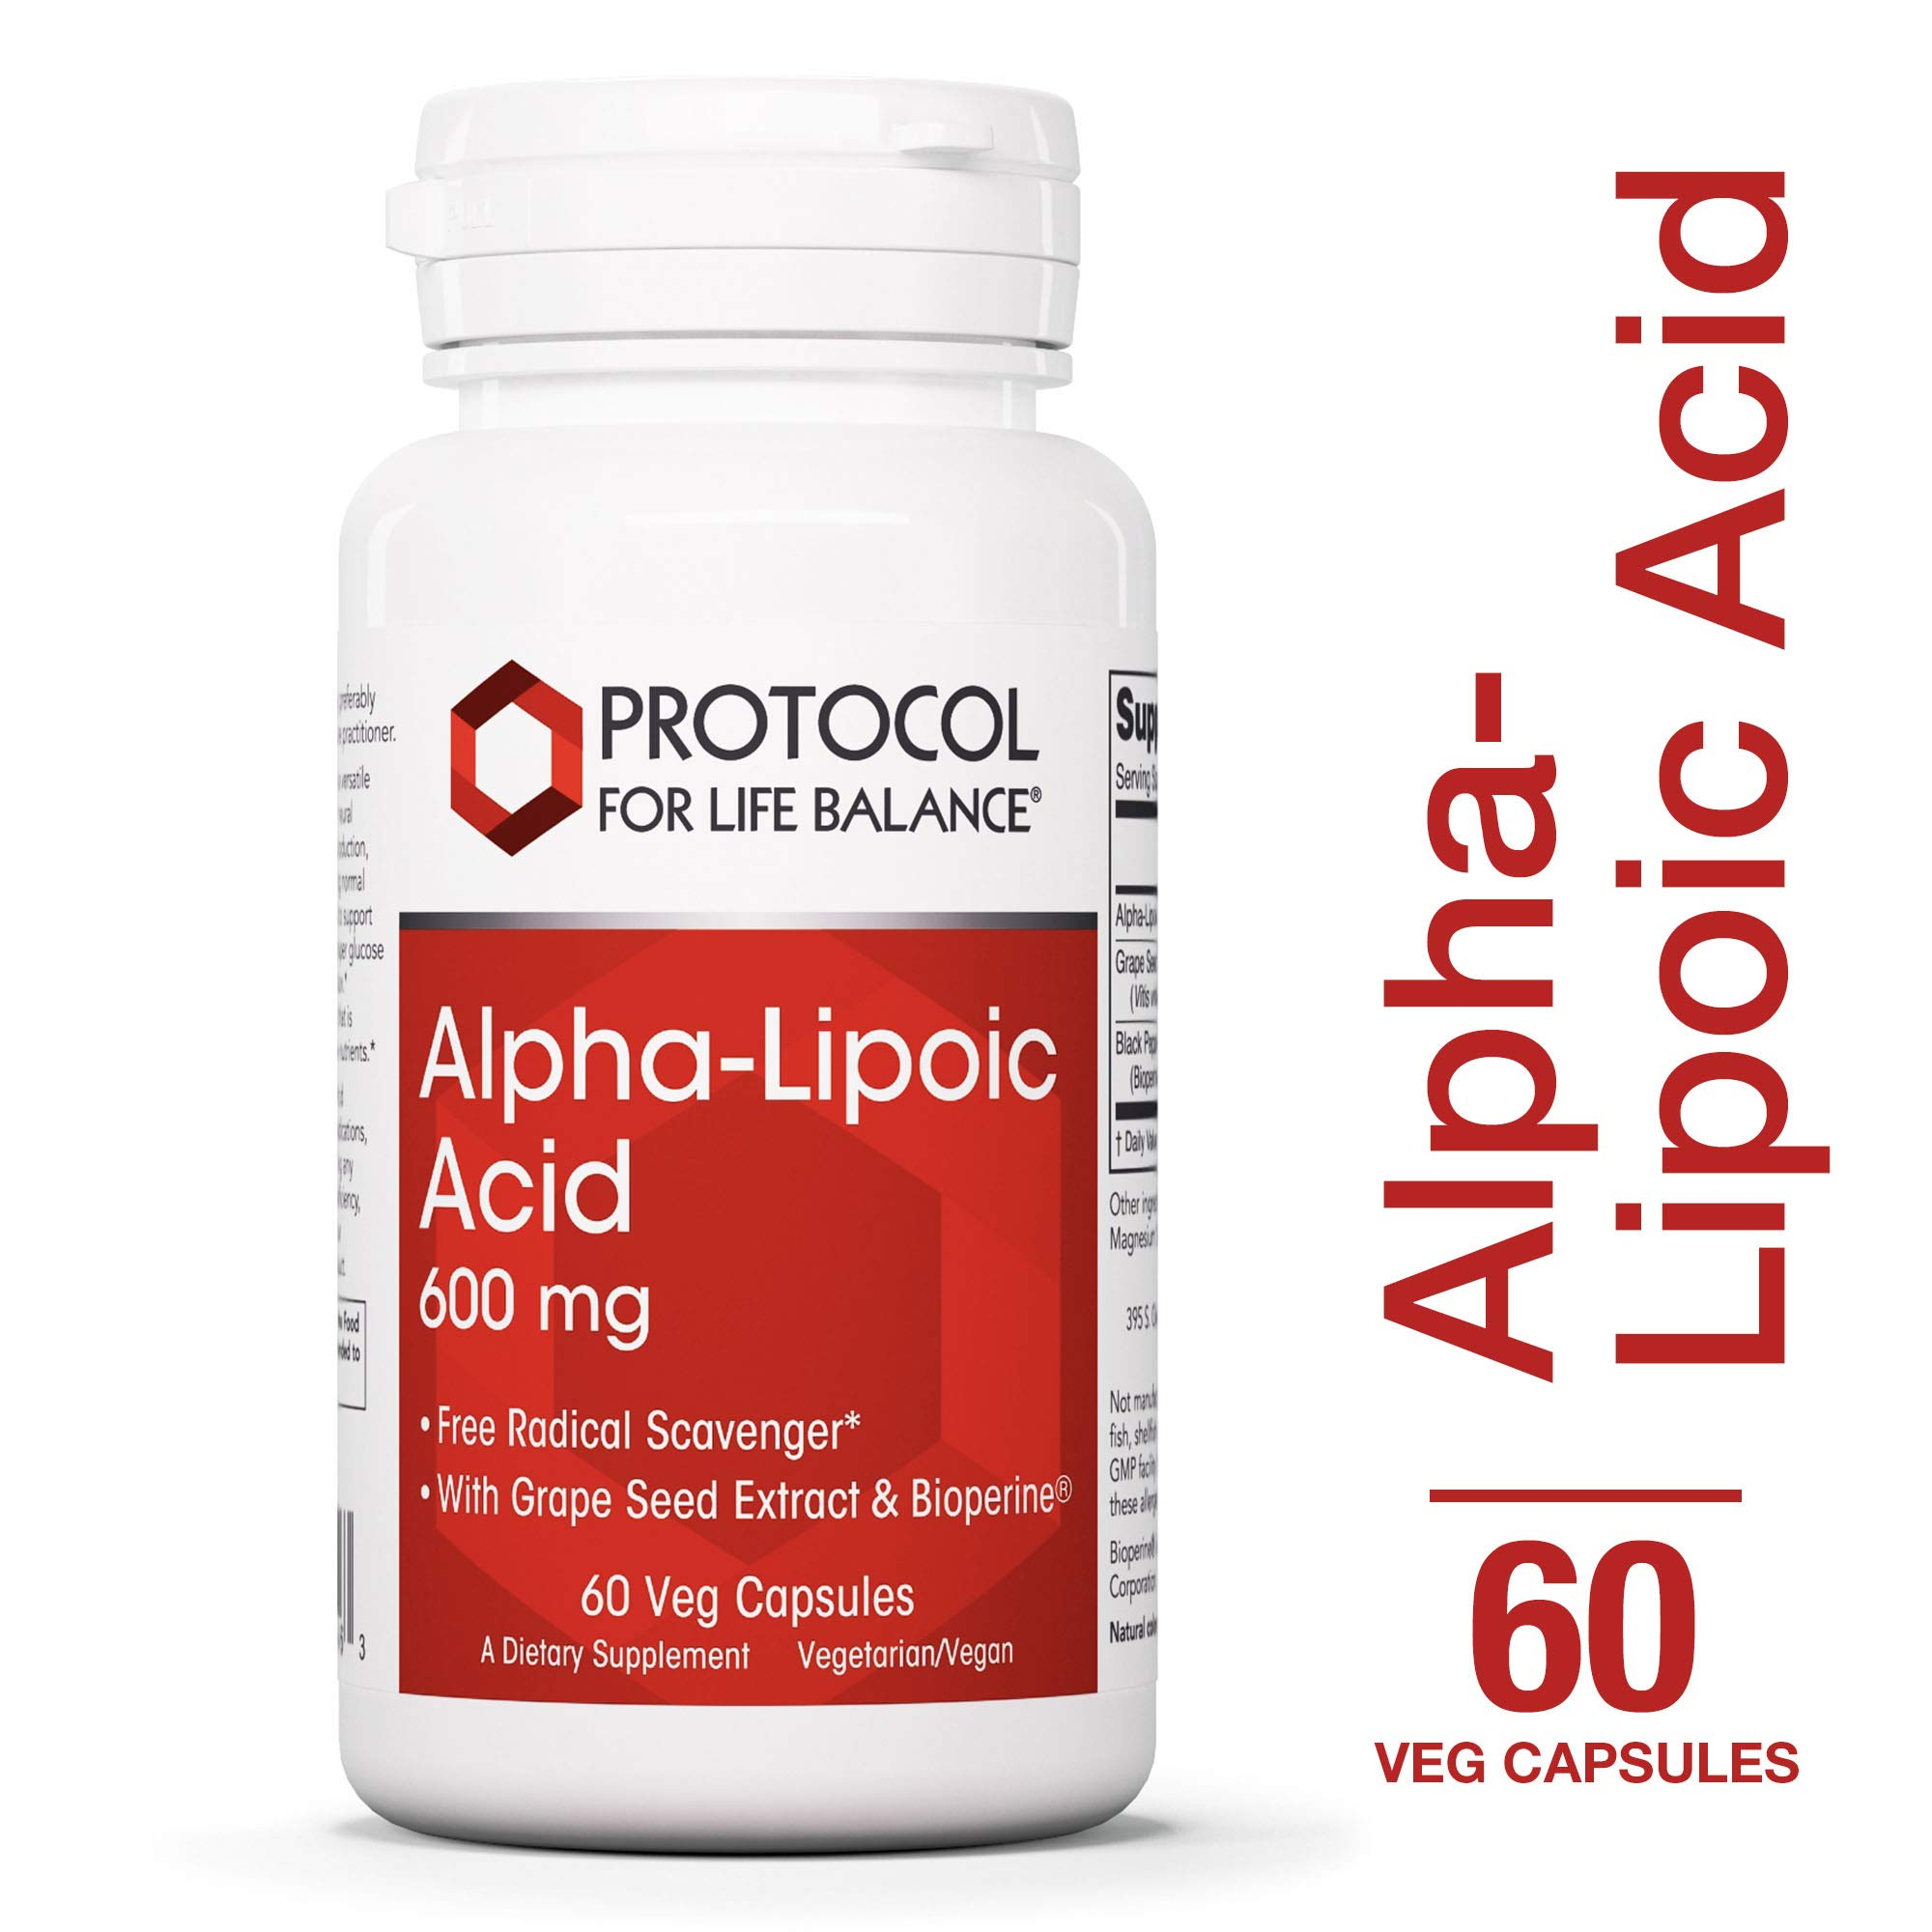 Protocol For Life Balance - Alpha-Lipoic Acid 600 mg - Free Radical Scavenger with Grape Seed Extract & Bioperine, Nervous System Support , Energy Boost, & Reduces Oxidative Stress - 60 Veg Capsules